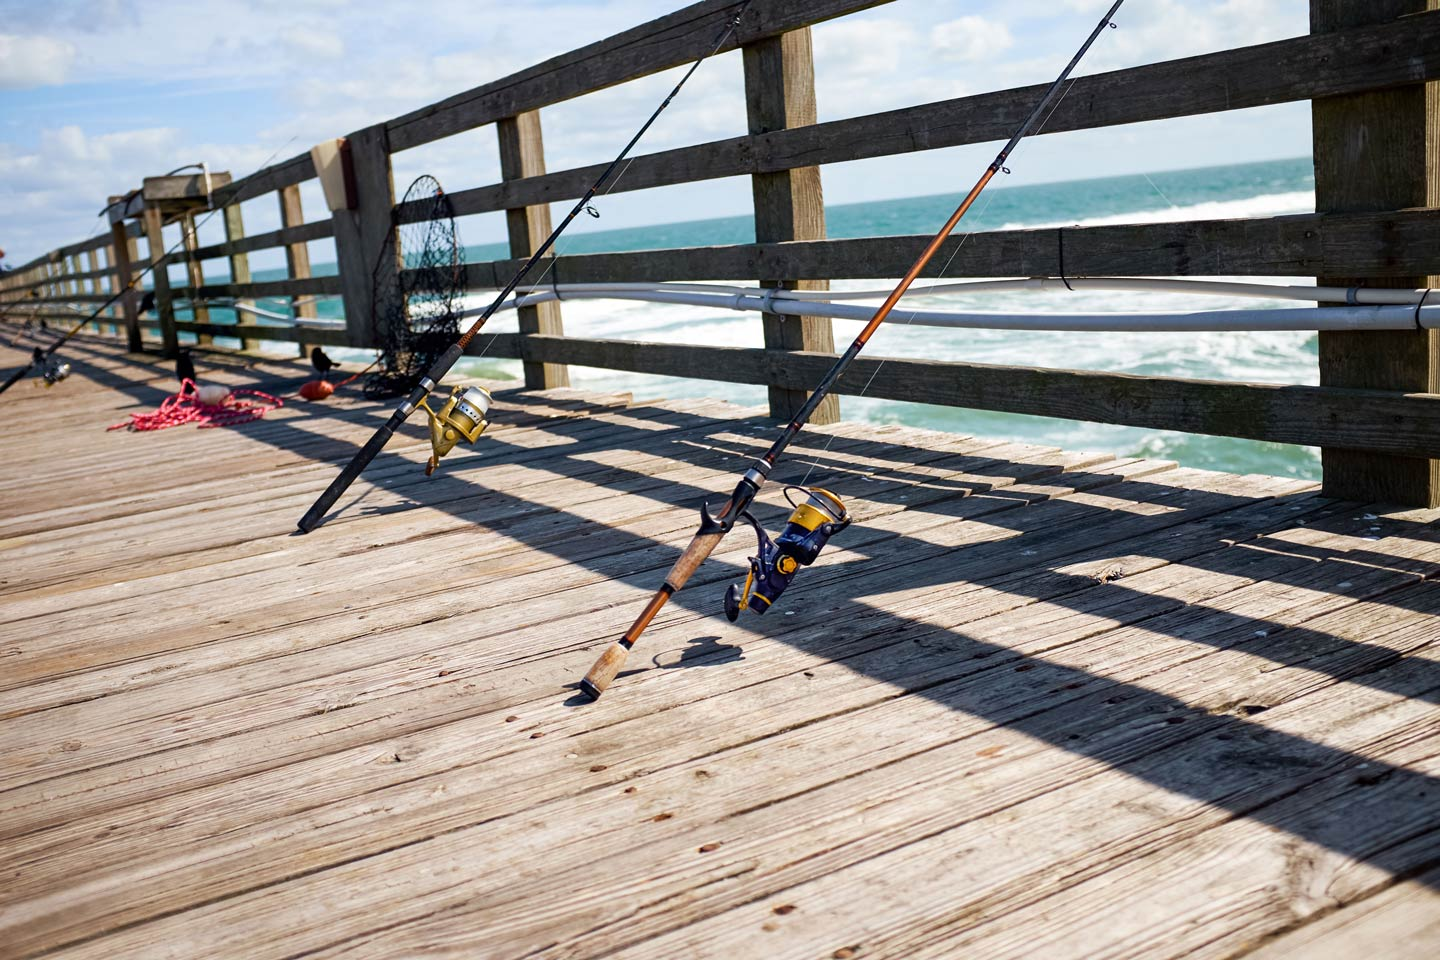 Fishing rods lined up on fishing pier in New Smyrna Beach